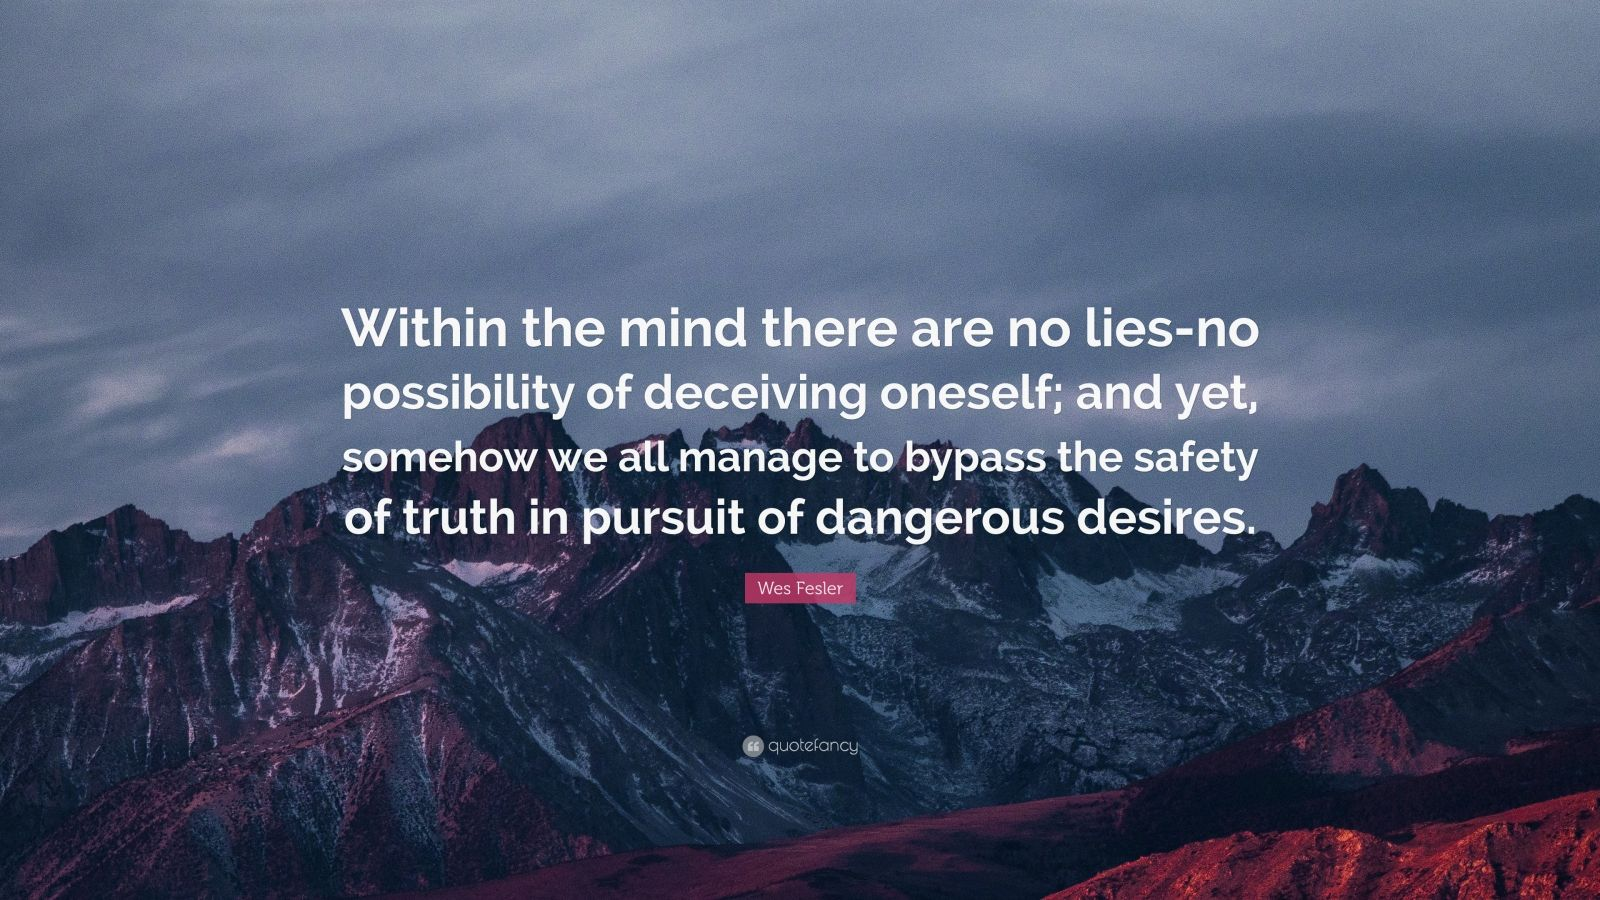 """Wes Fesler Quote: """"Within the mind there are no lies-no possibility of deceiving oneself; and yet, somehow we all manage to bypass the safety of truth in pursuit of dangerous desires."""""""